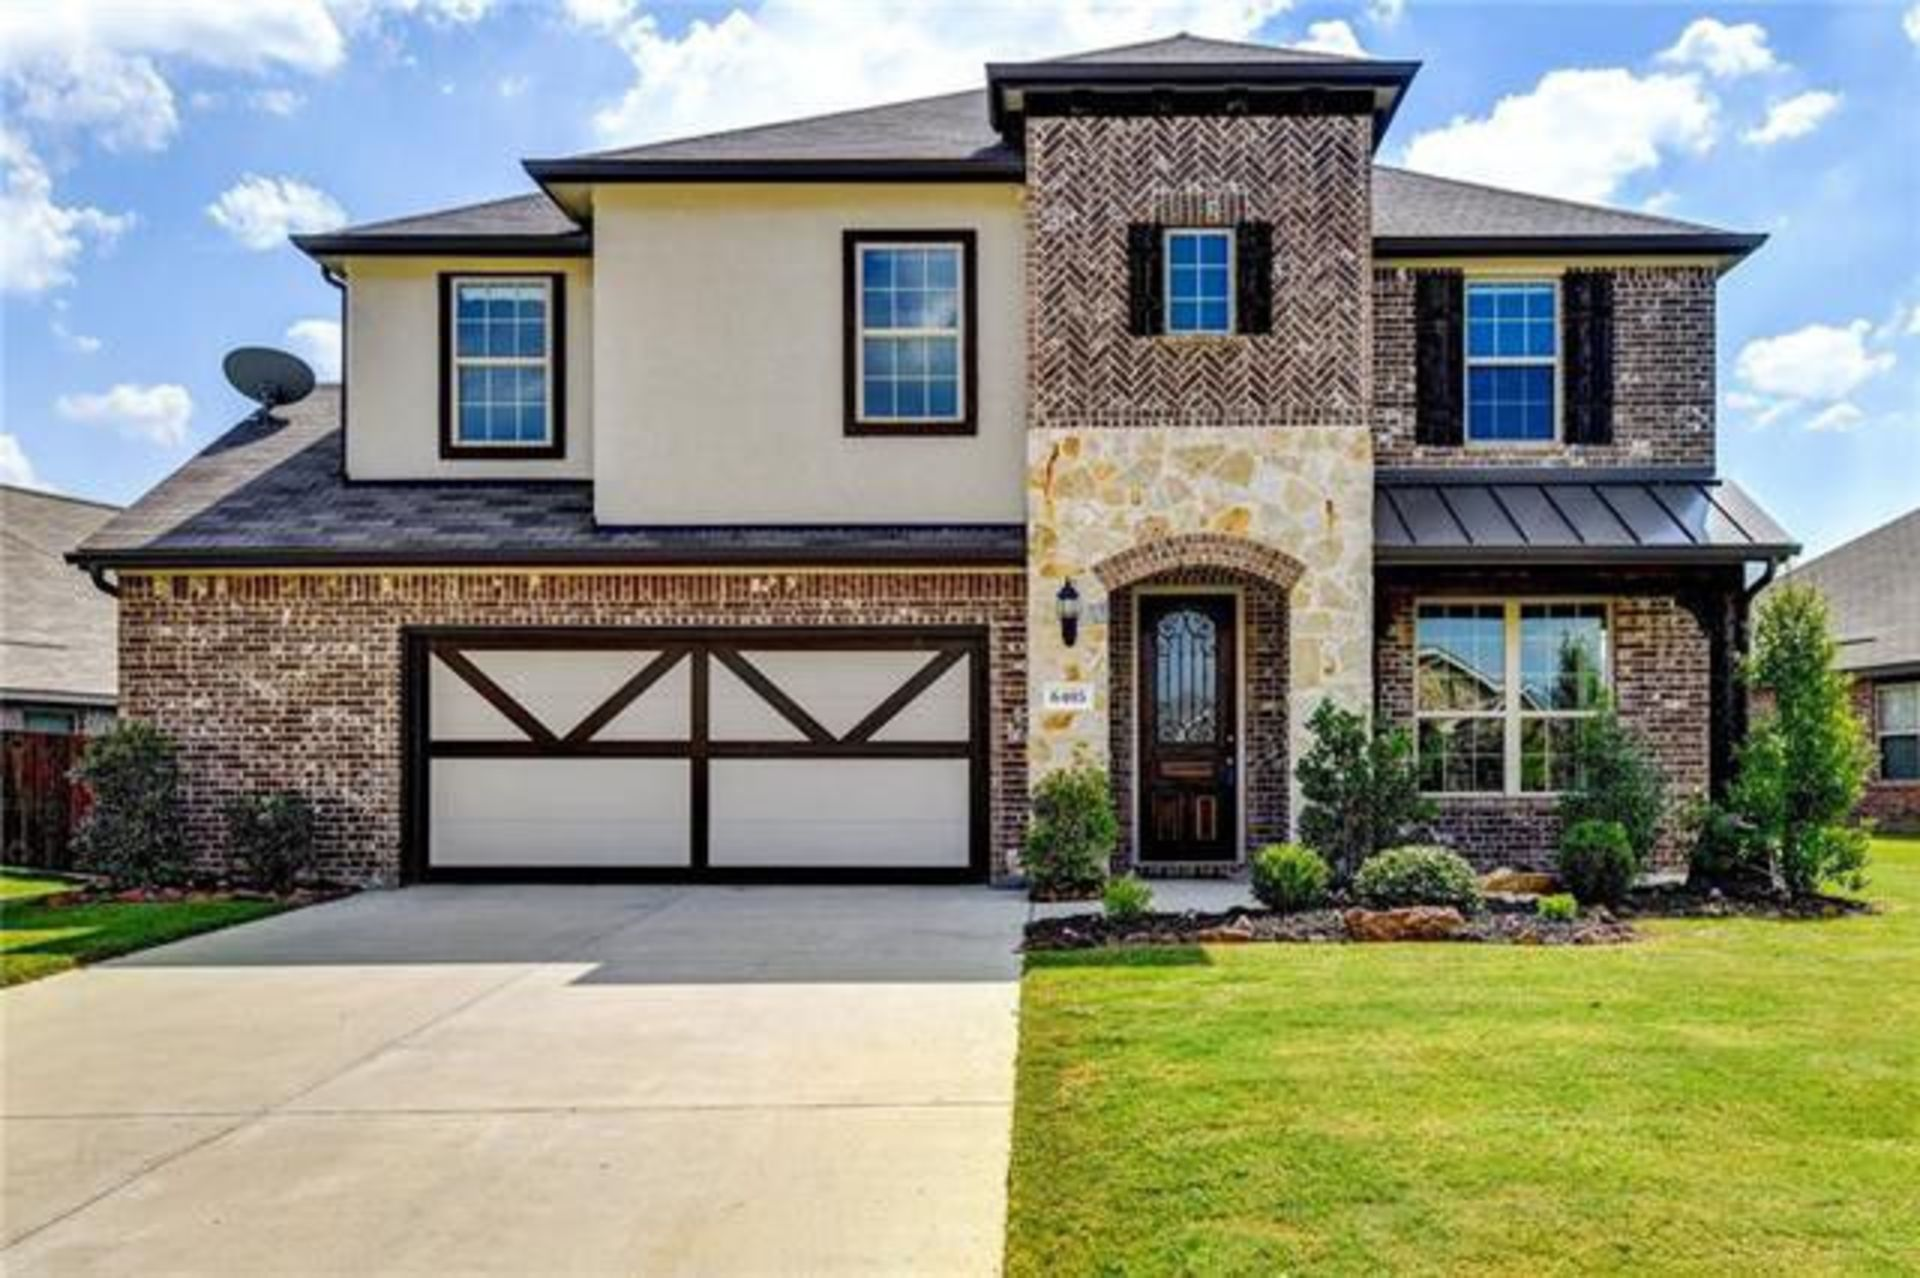 Open House, Saturday, September 14th 1-3pm 6405 Meandering Creek Drive, Denton